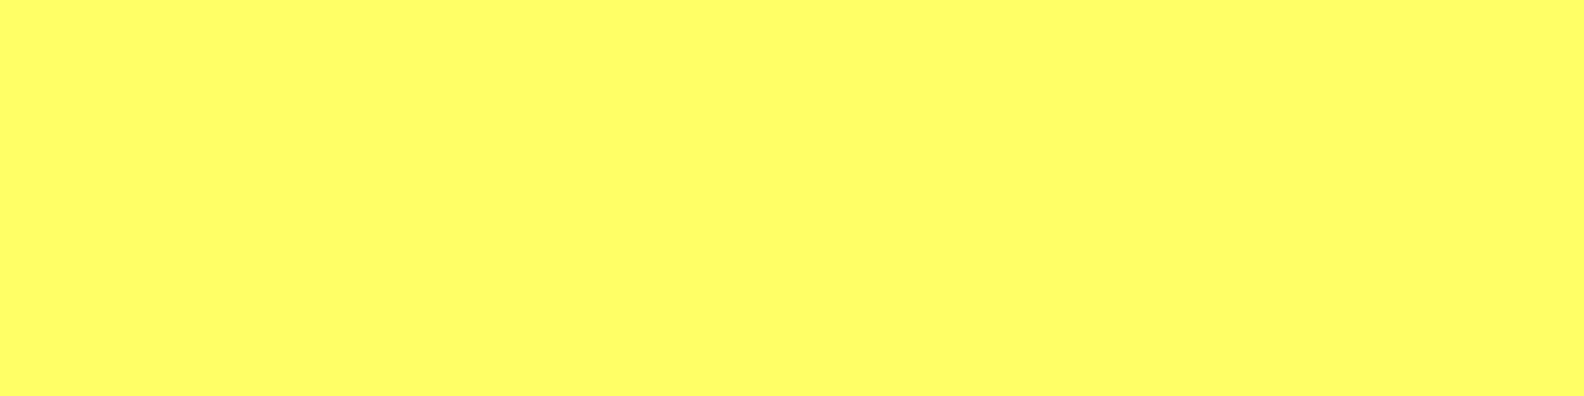 1584x396 Laser Lemon Solid Color Background